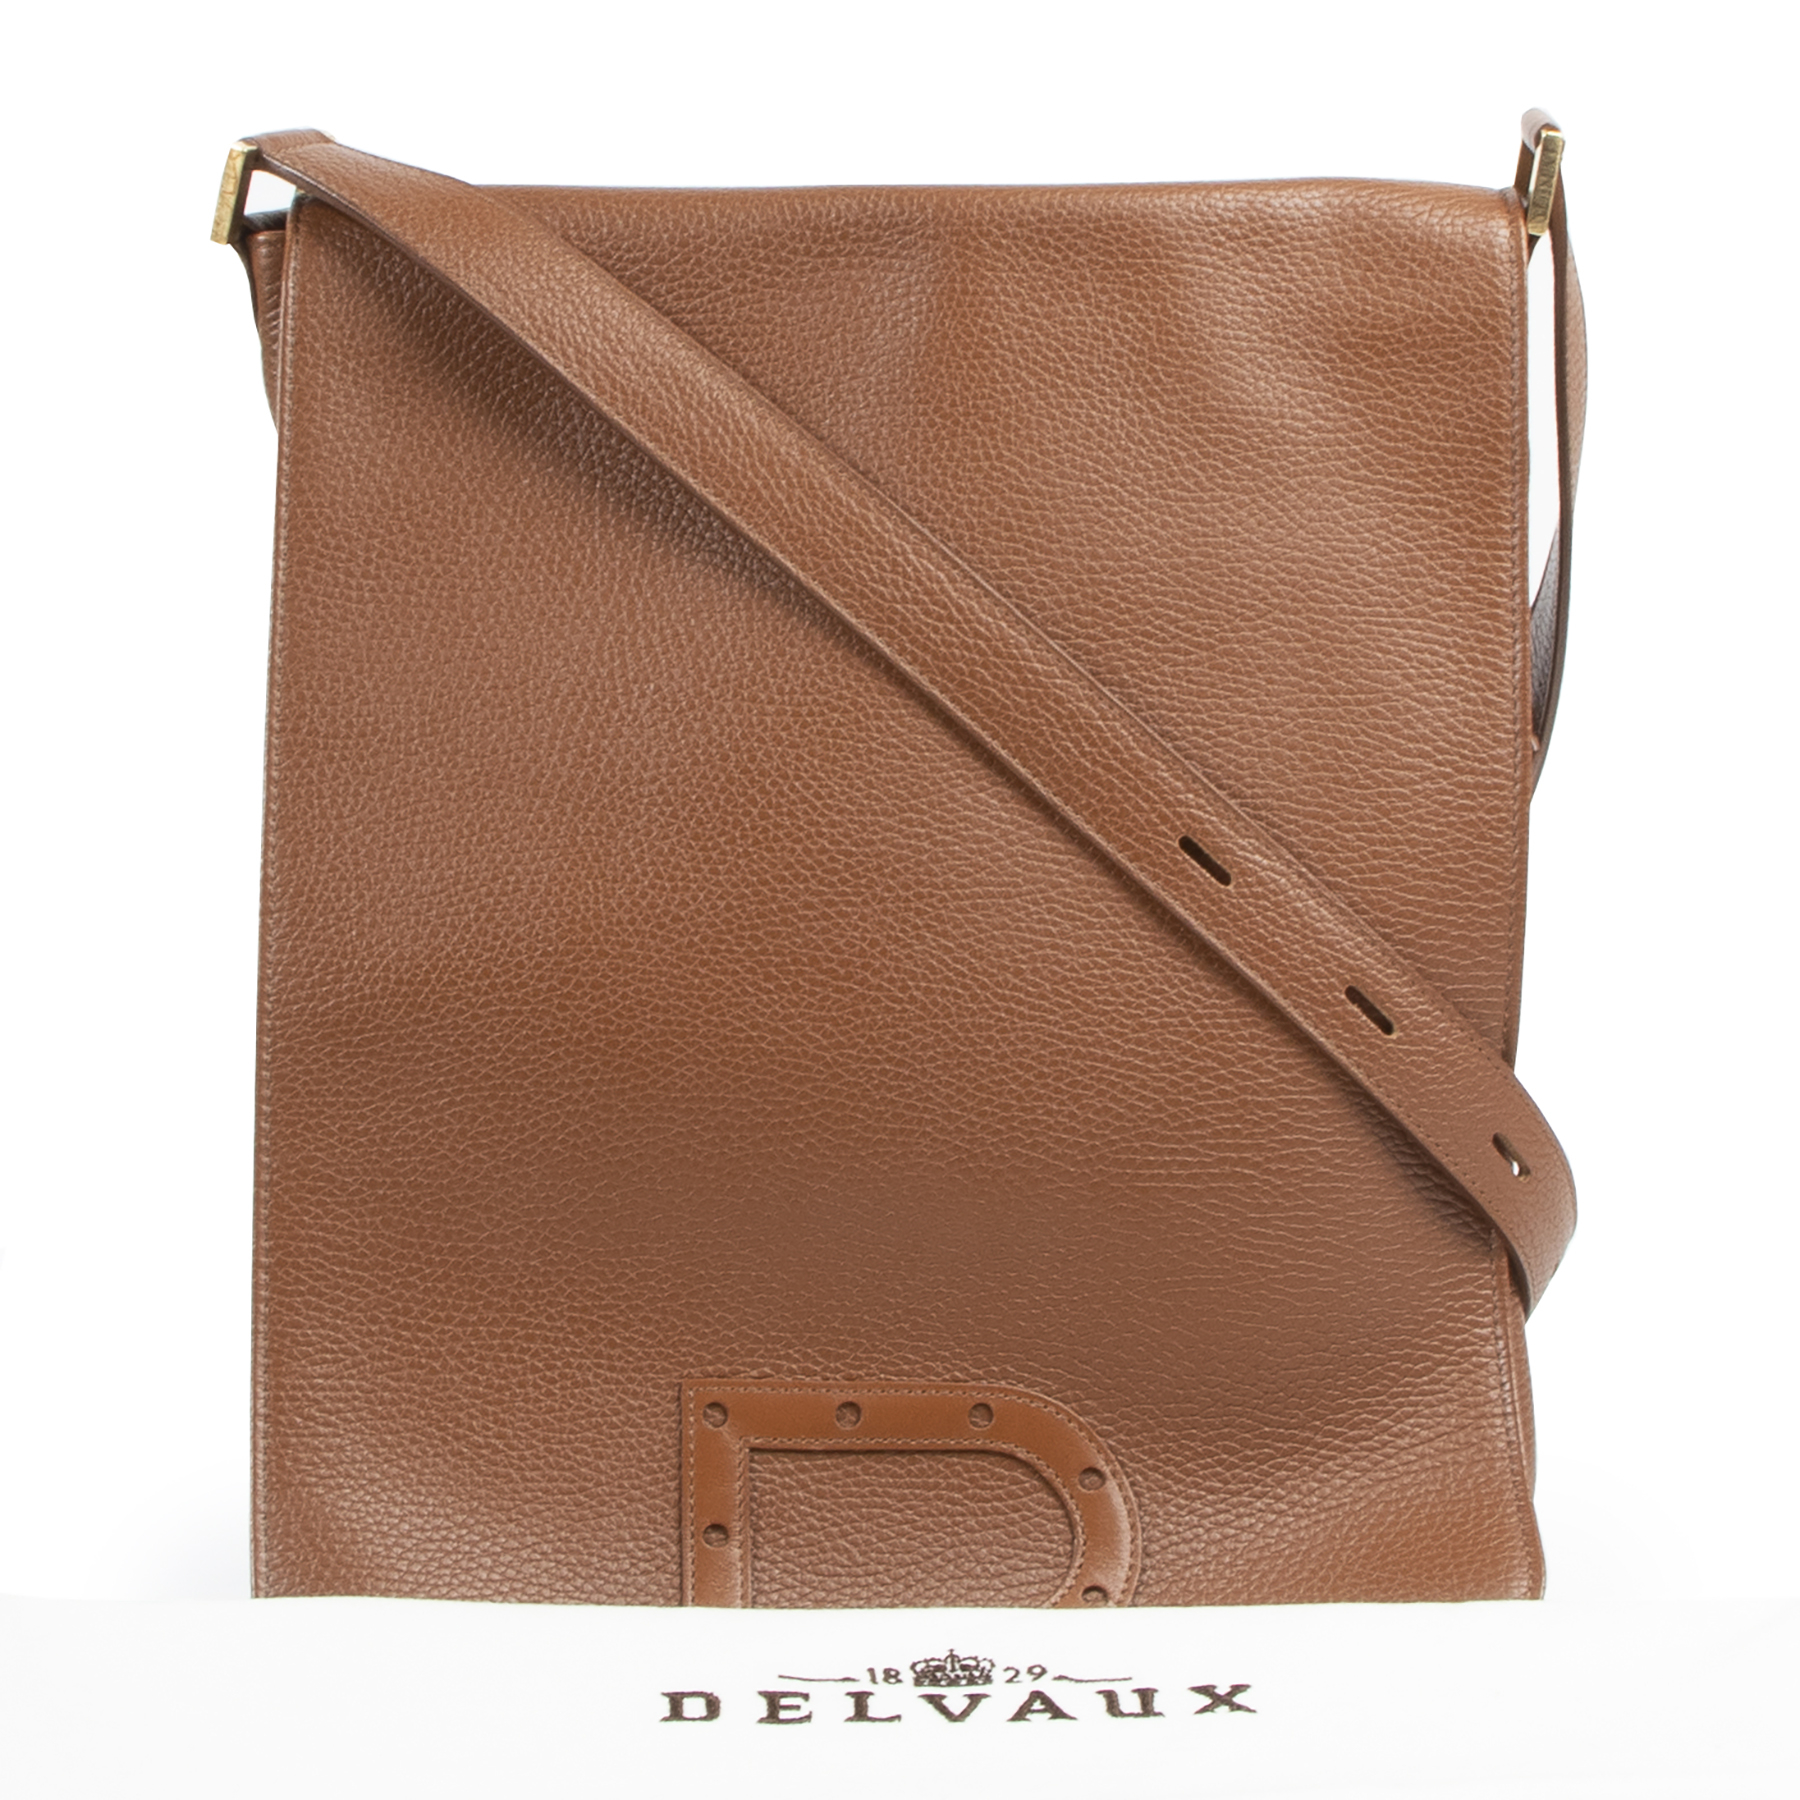 Authentic secondhand Delvaux Cognac Louise Baudrier Gm Shoulder Bag designer bags fashion luxury vintage webshop safe secure online shopping